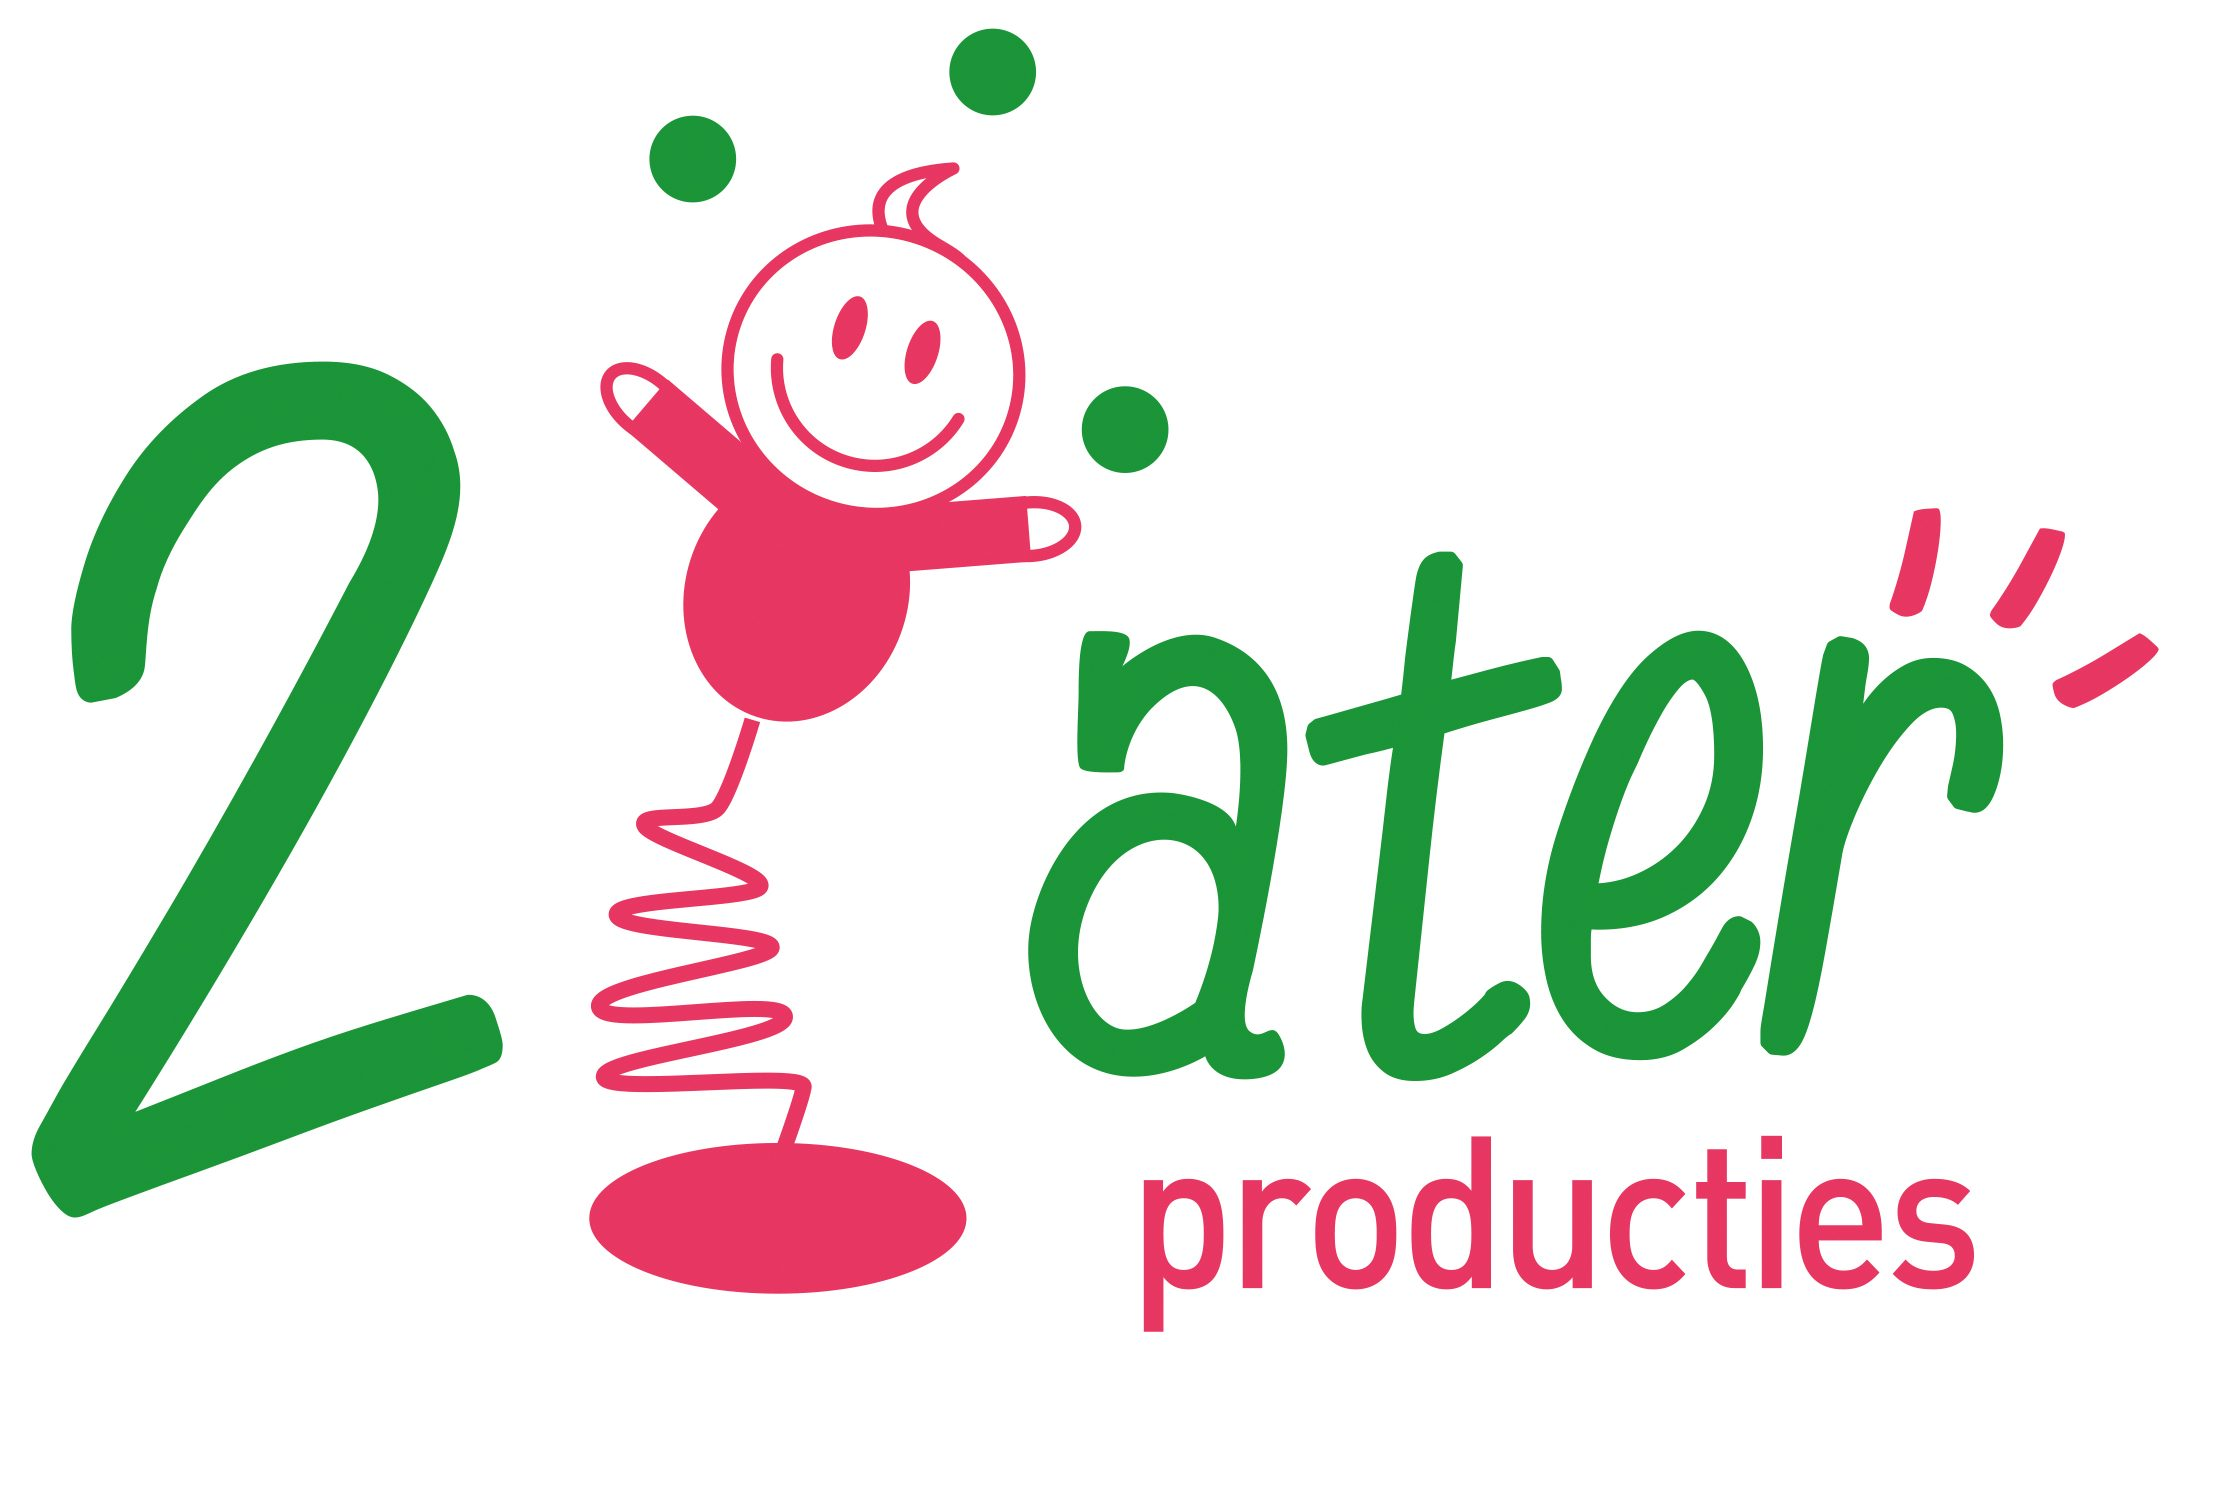 2-ater Producties